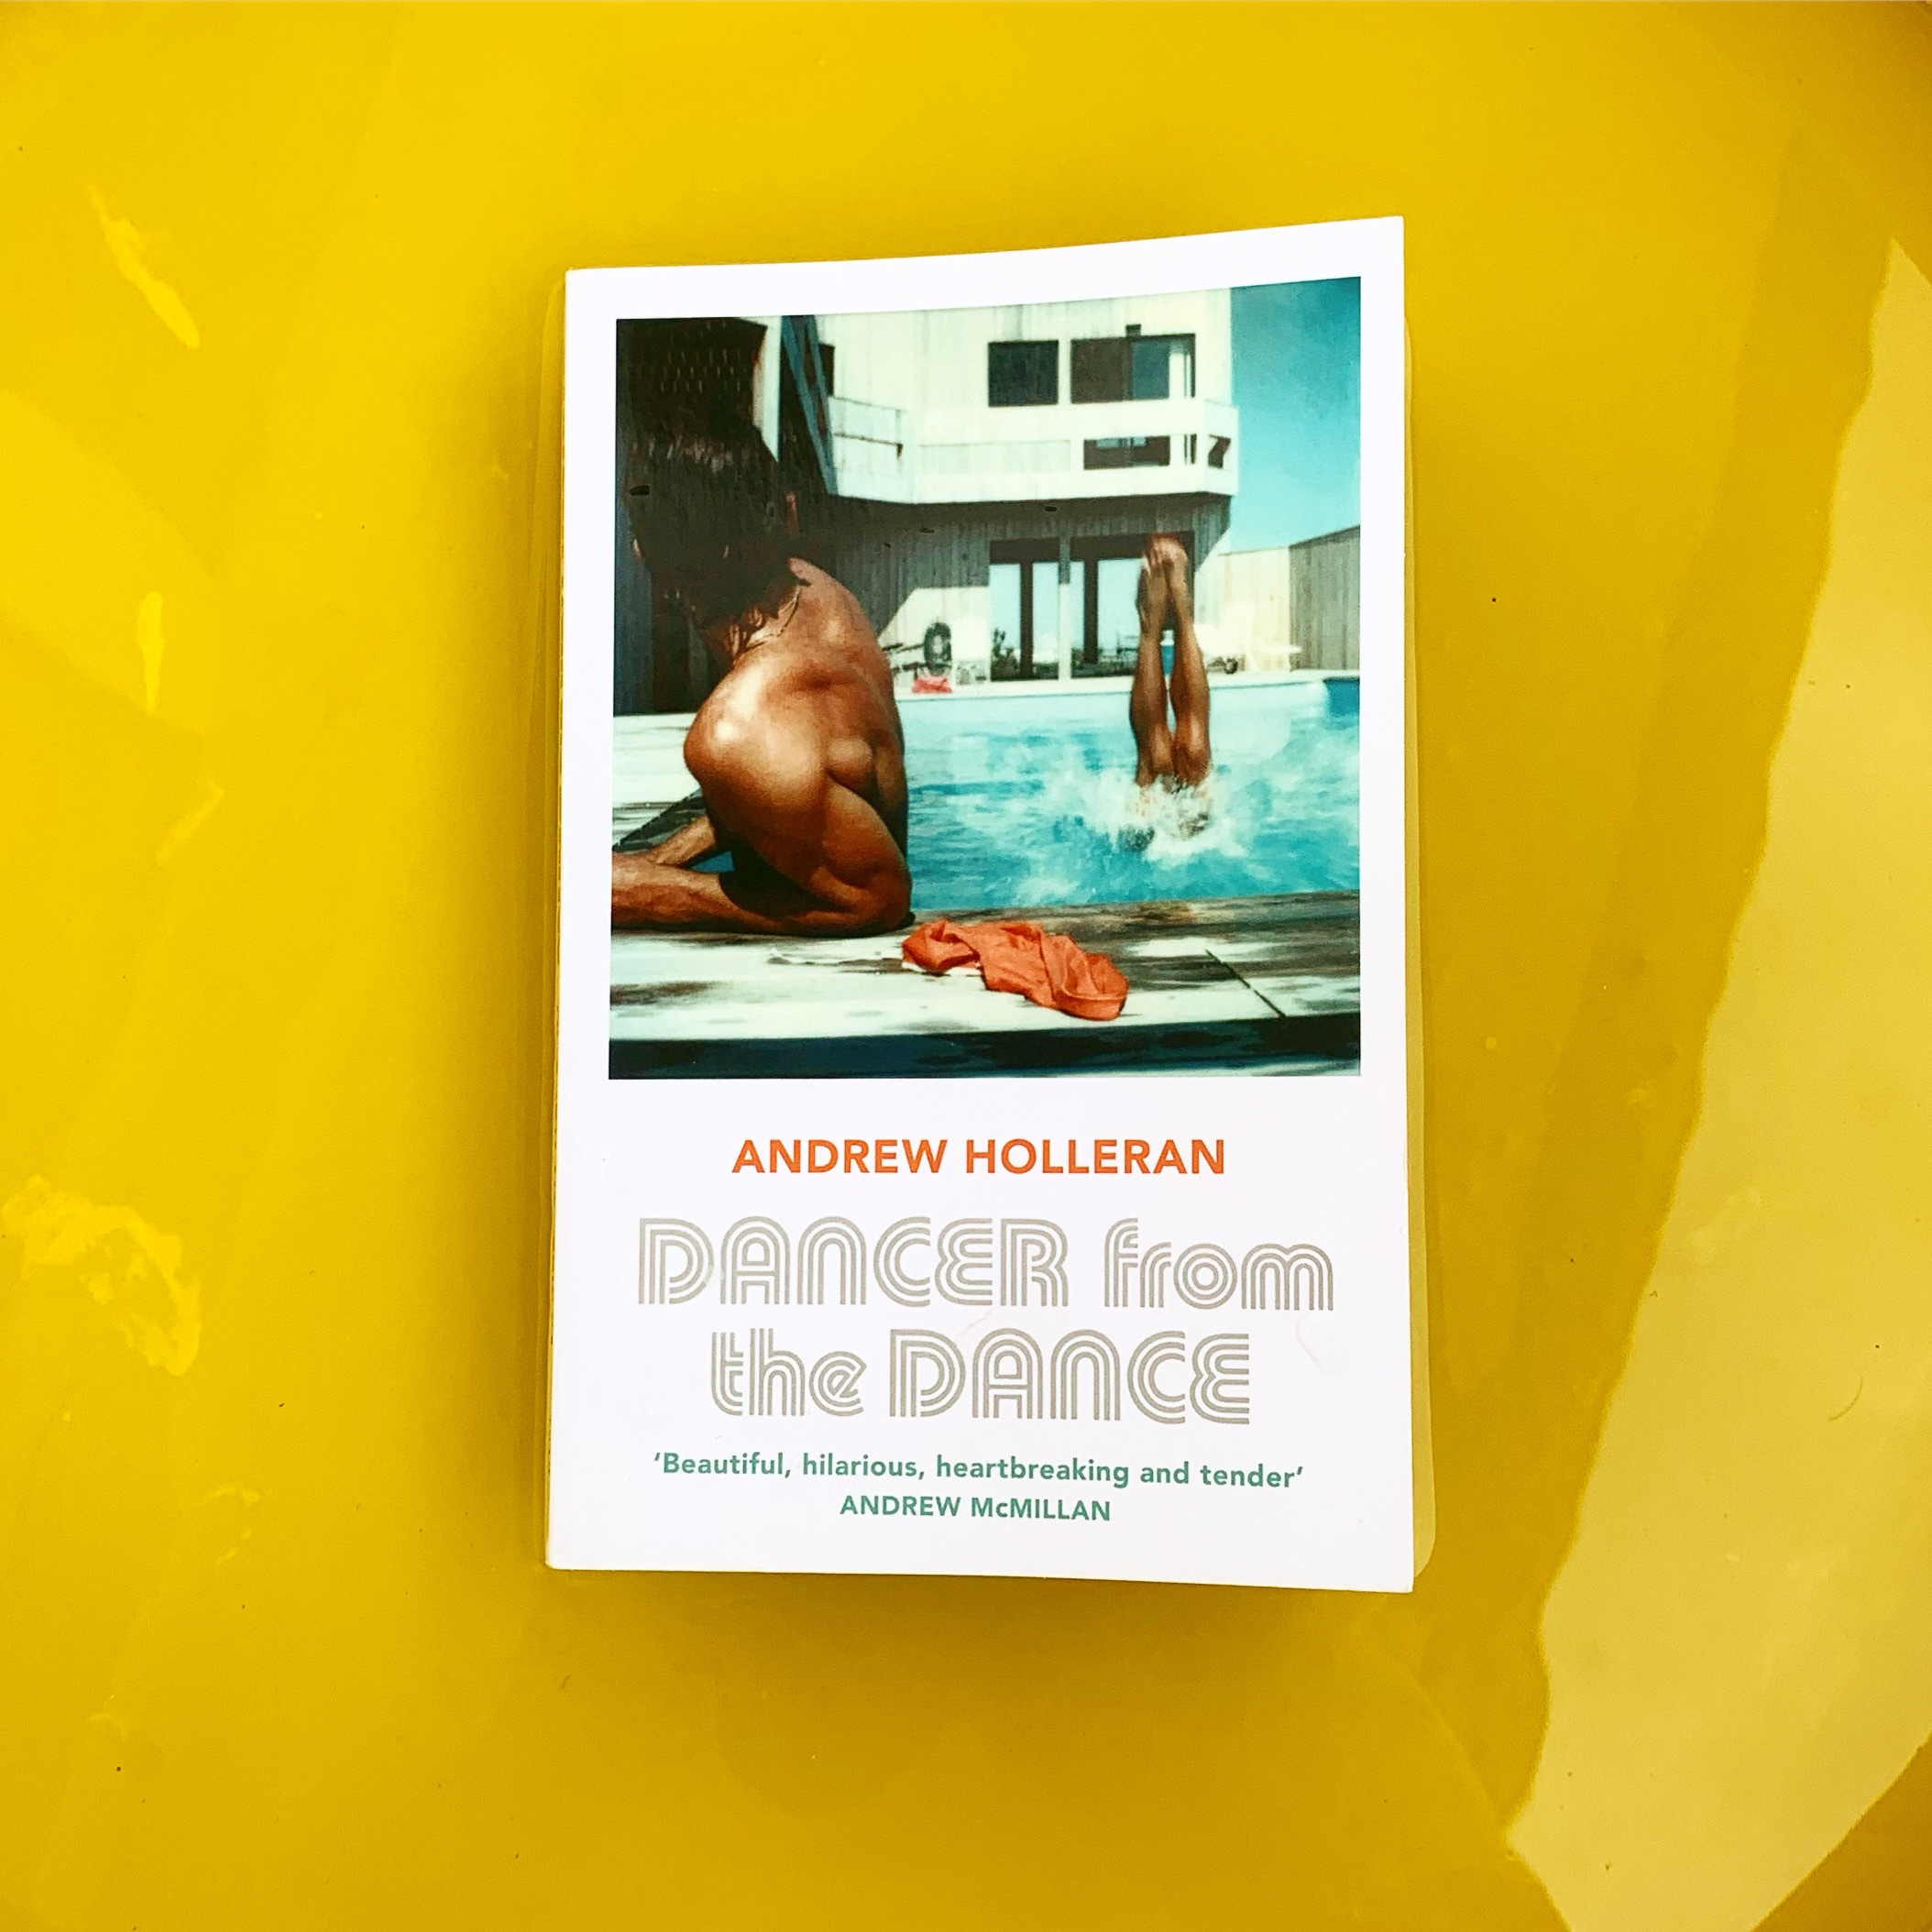 Andrew Holleran - Dancer from the Dance